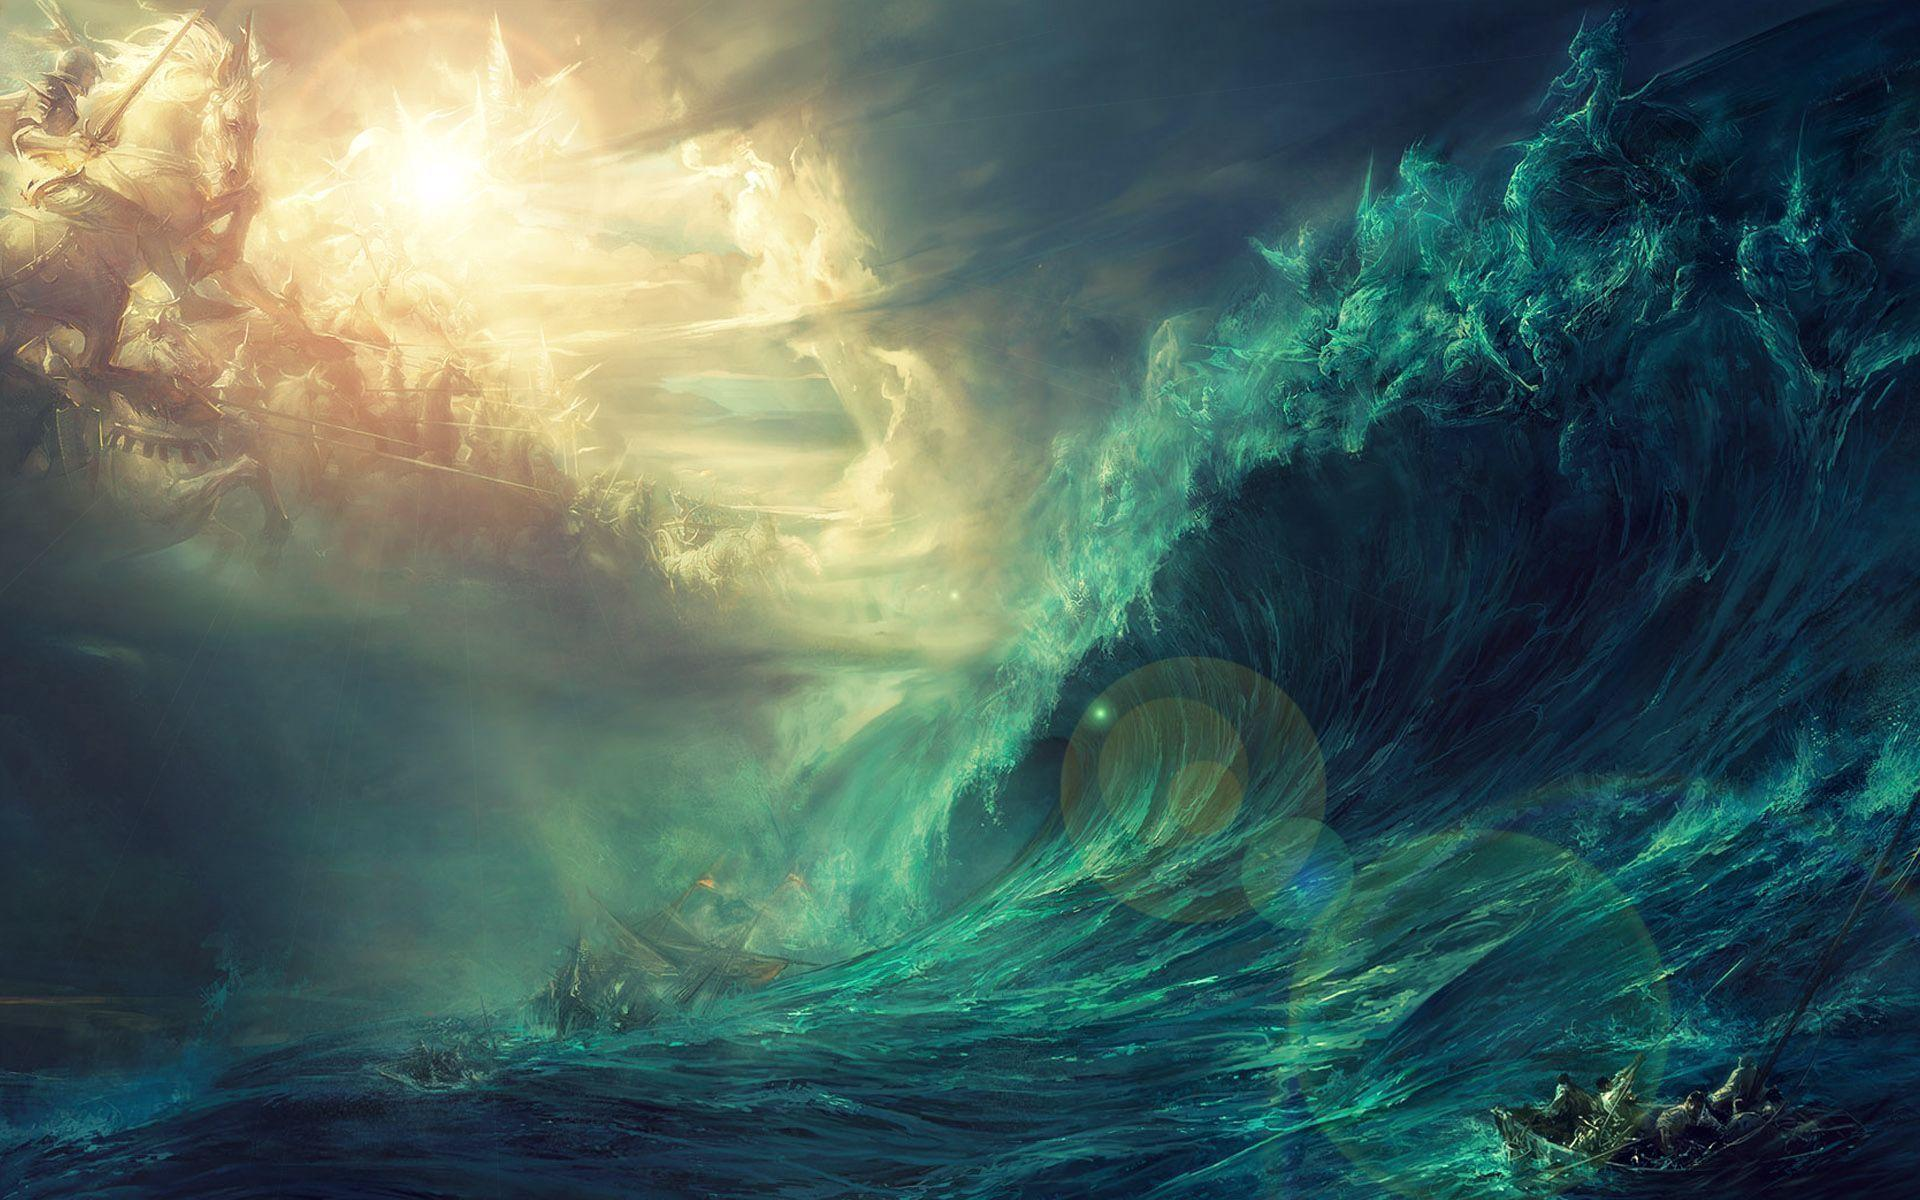 Stormy Sea Painting wallpaper